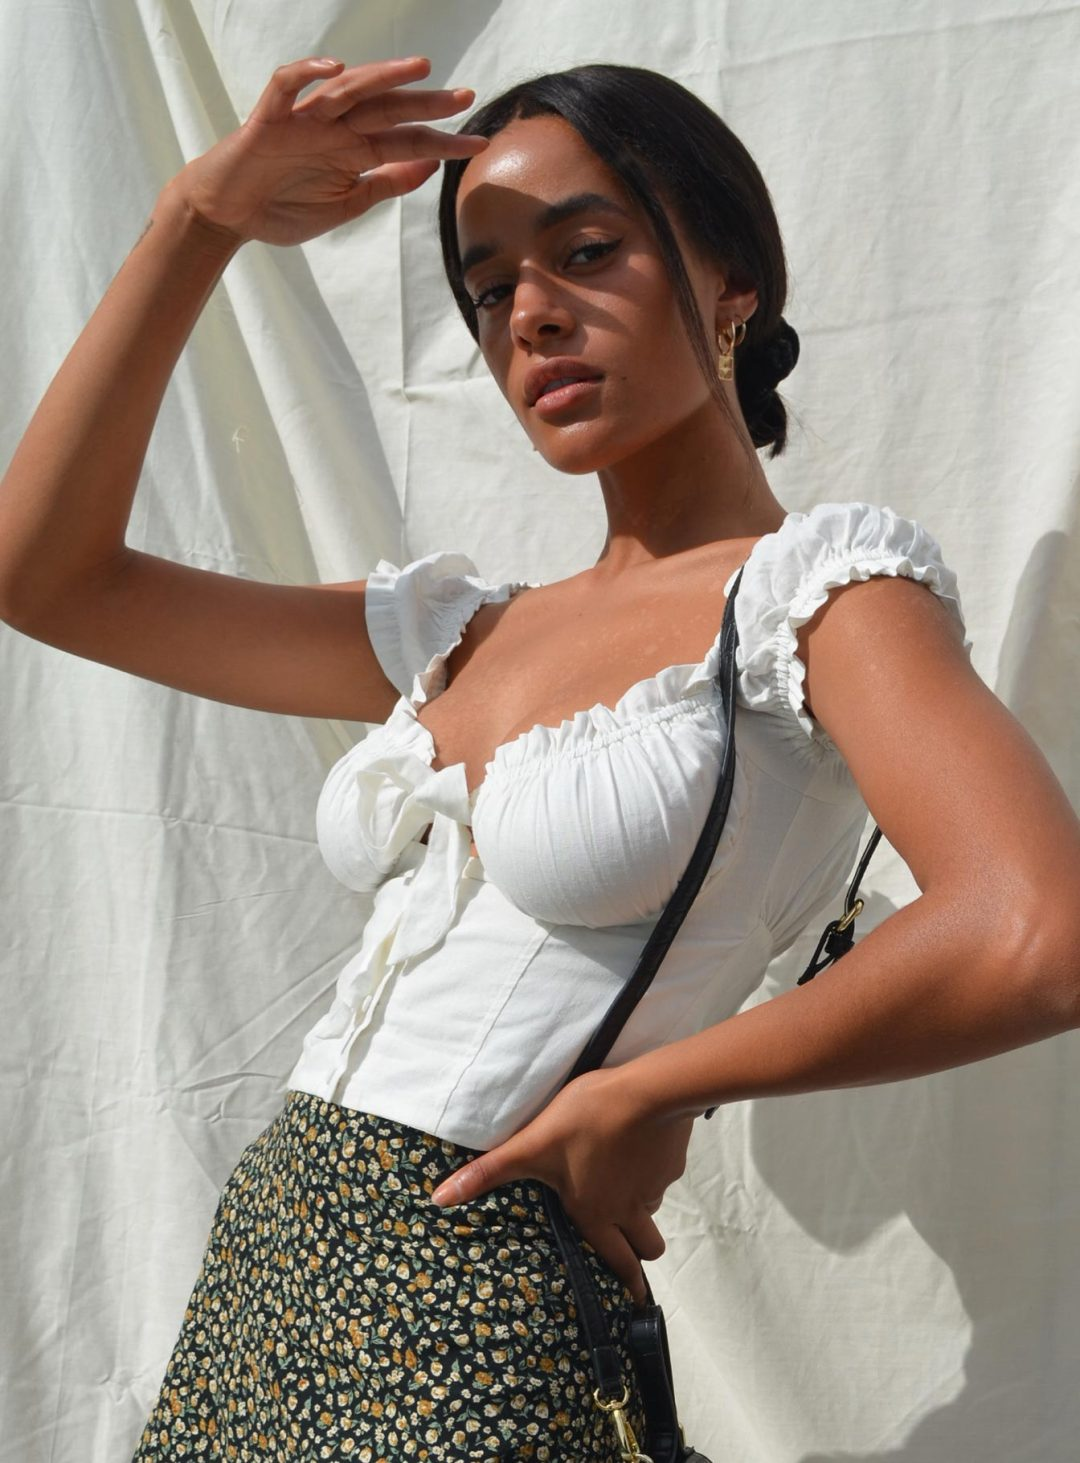 White milkmaid crop top outfit